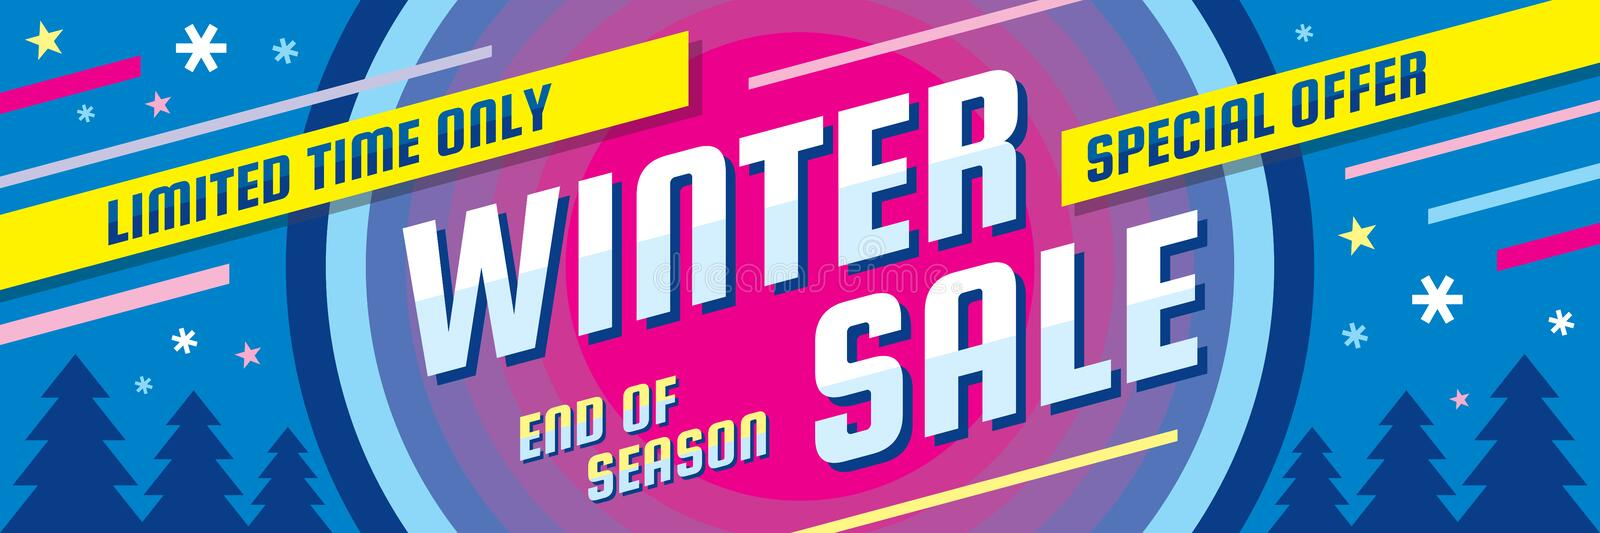 Winter sale - concept horizontal banner vector illustration. Abstract creative discount layout. Special offer. Graphic design. vector illustration